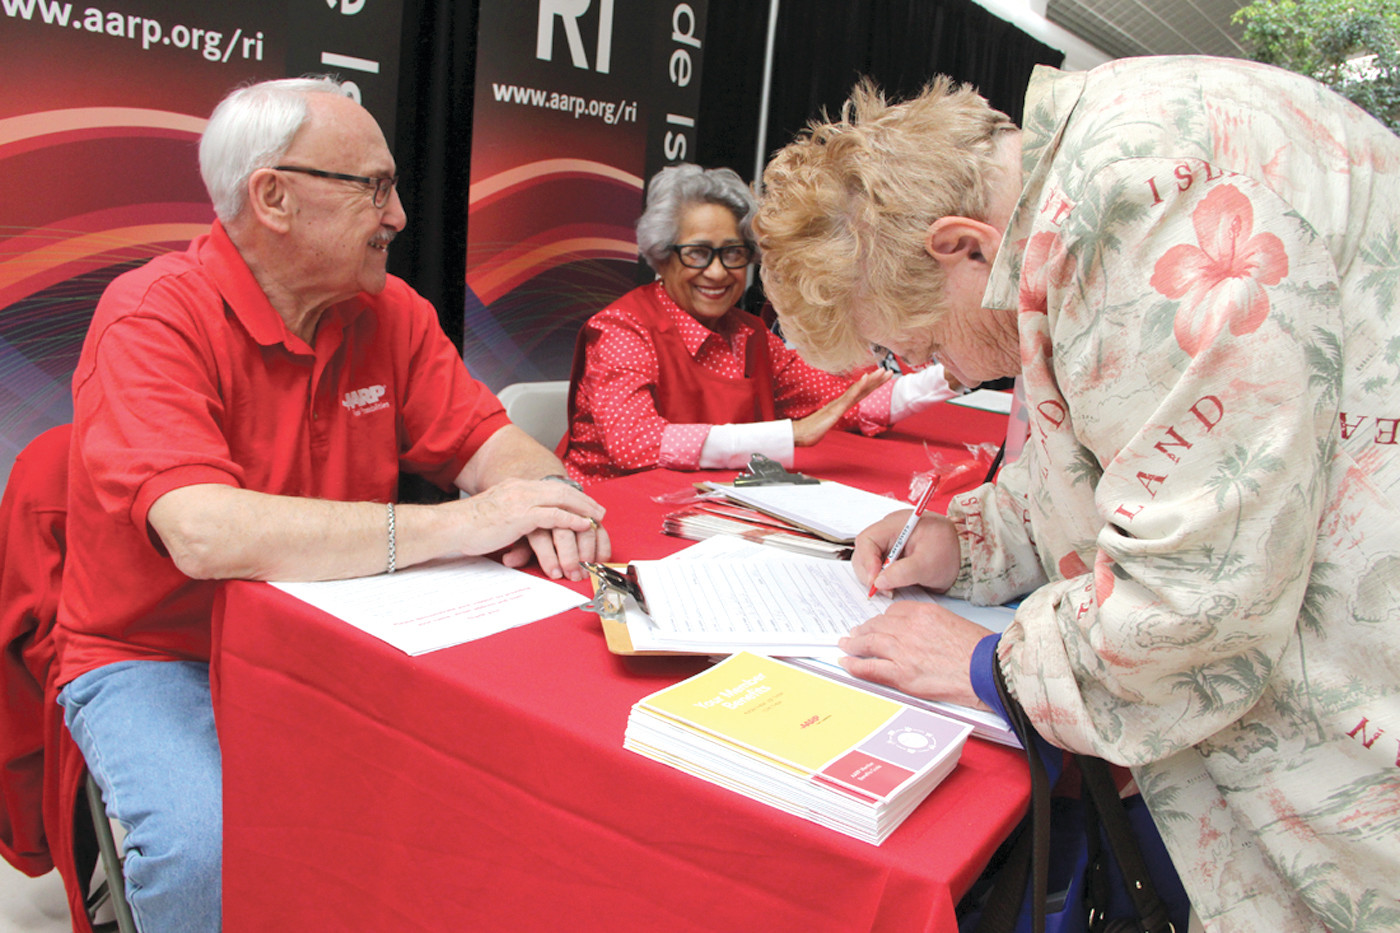 Marianne Whalen of Blue Cross Rhode Island assists Sanford and Joyce Miller. Blue Cross was a major sponsor of the expo hosted by Prime Time magazine.